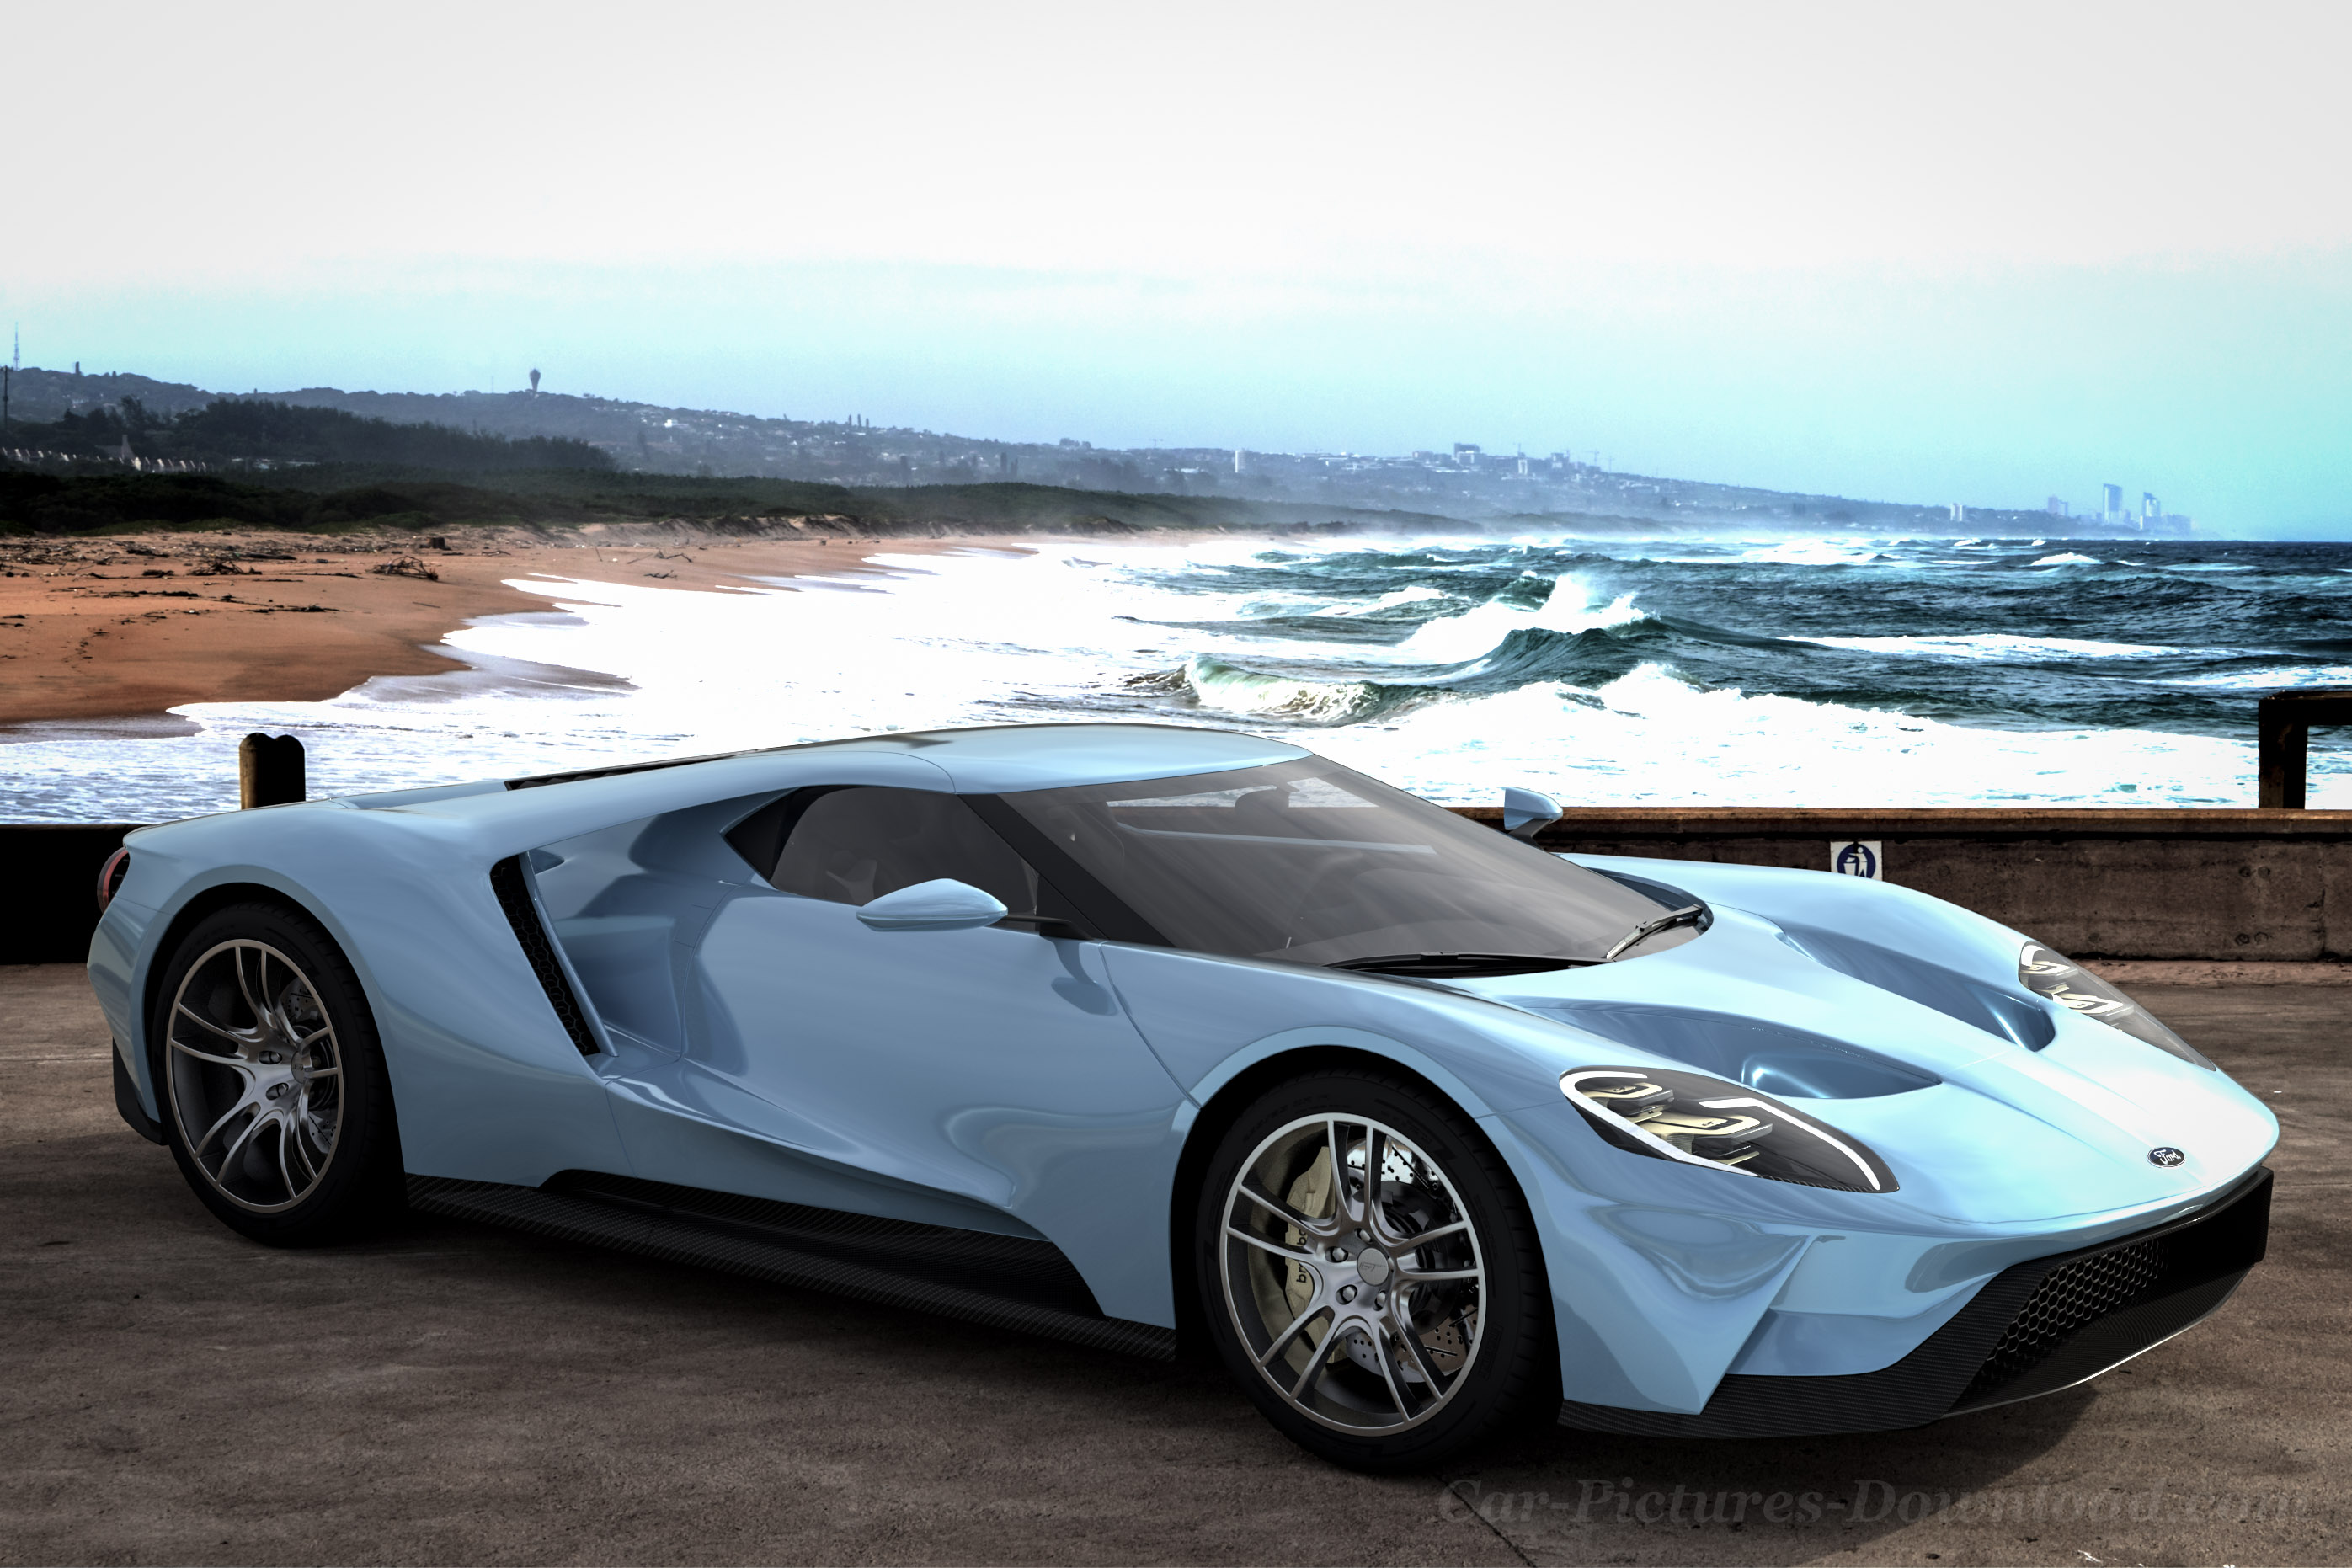 Sports Car Images Best Speedy Cars High Quality Download Free